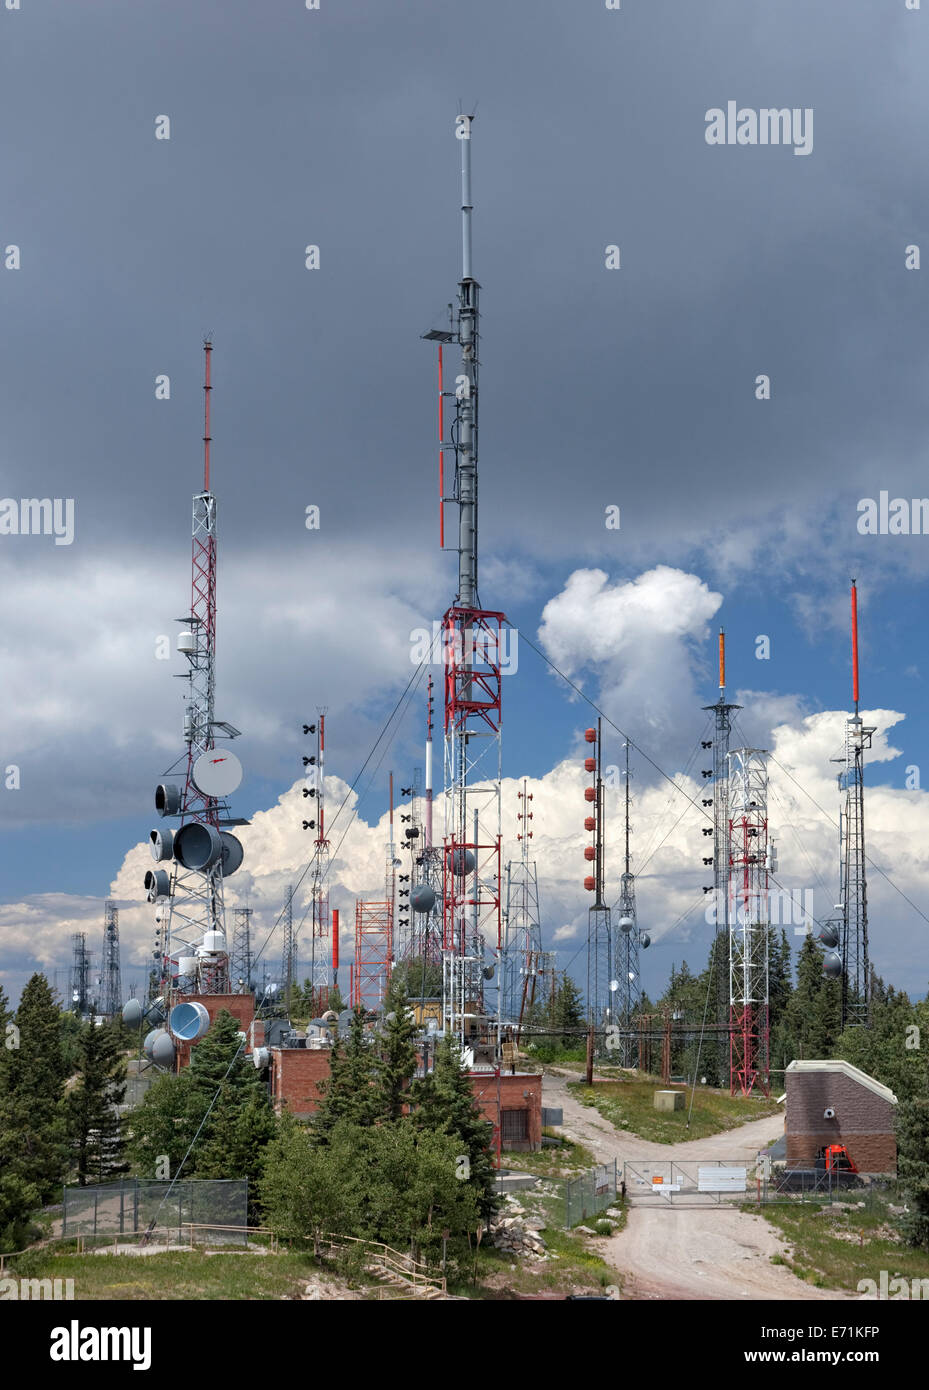 Communication Towers and Antennas on Sandia Crest, Albuquerque, NM - Stock Image